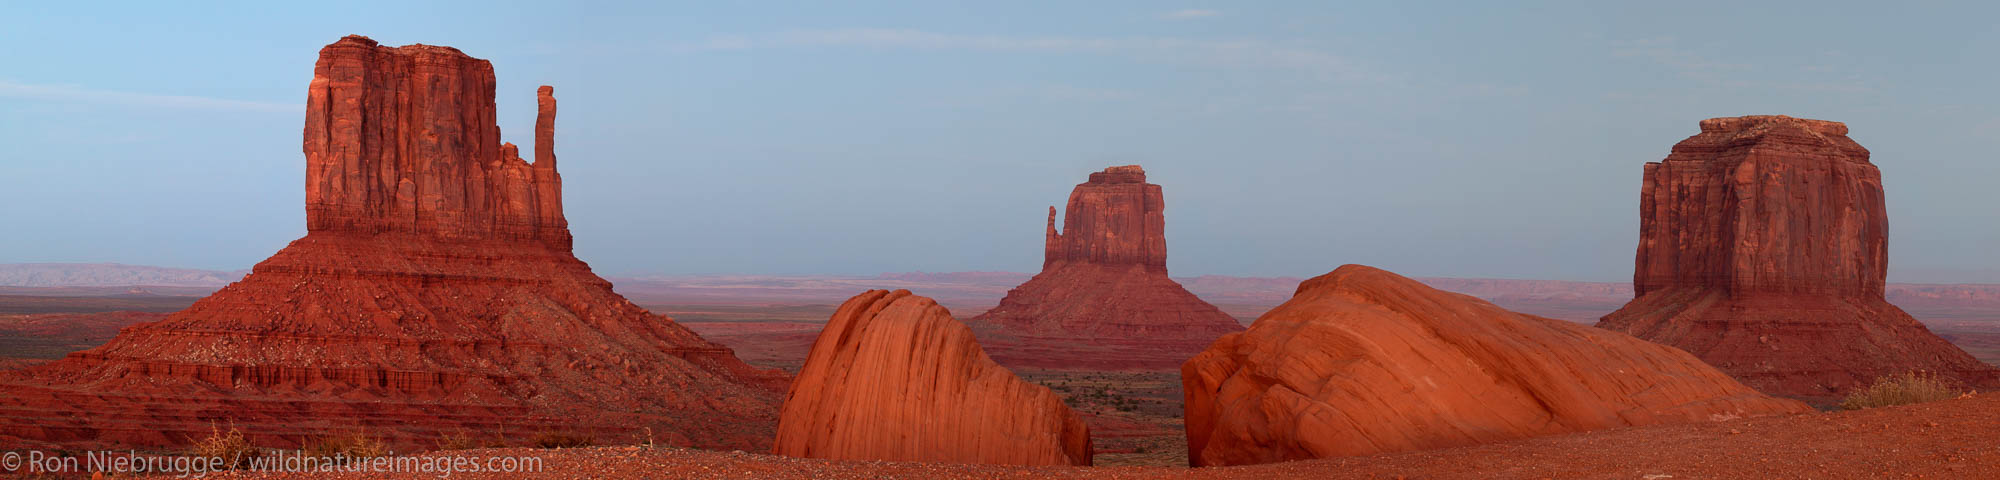 Panoramic photos of Monument Valley Navajo Tribal Park at sunset, Utah.  This image consists of five 11mp images.